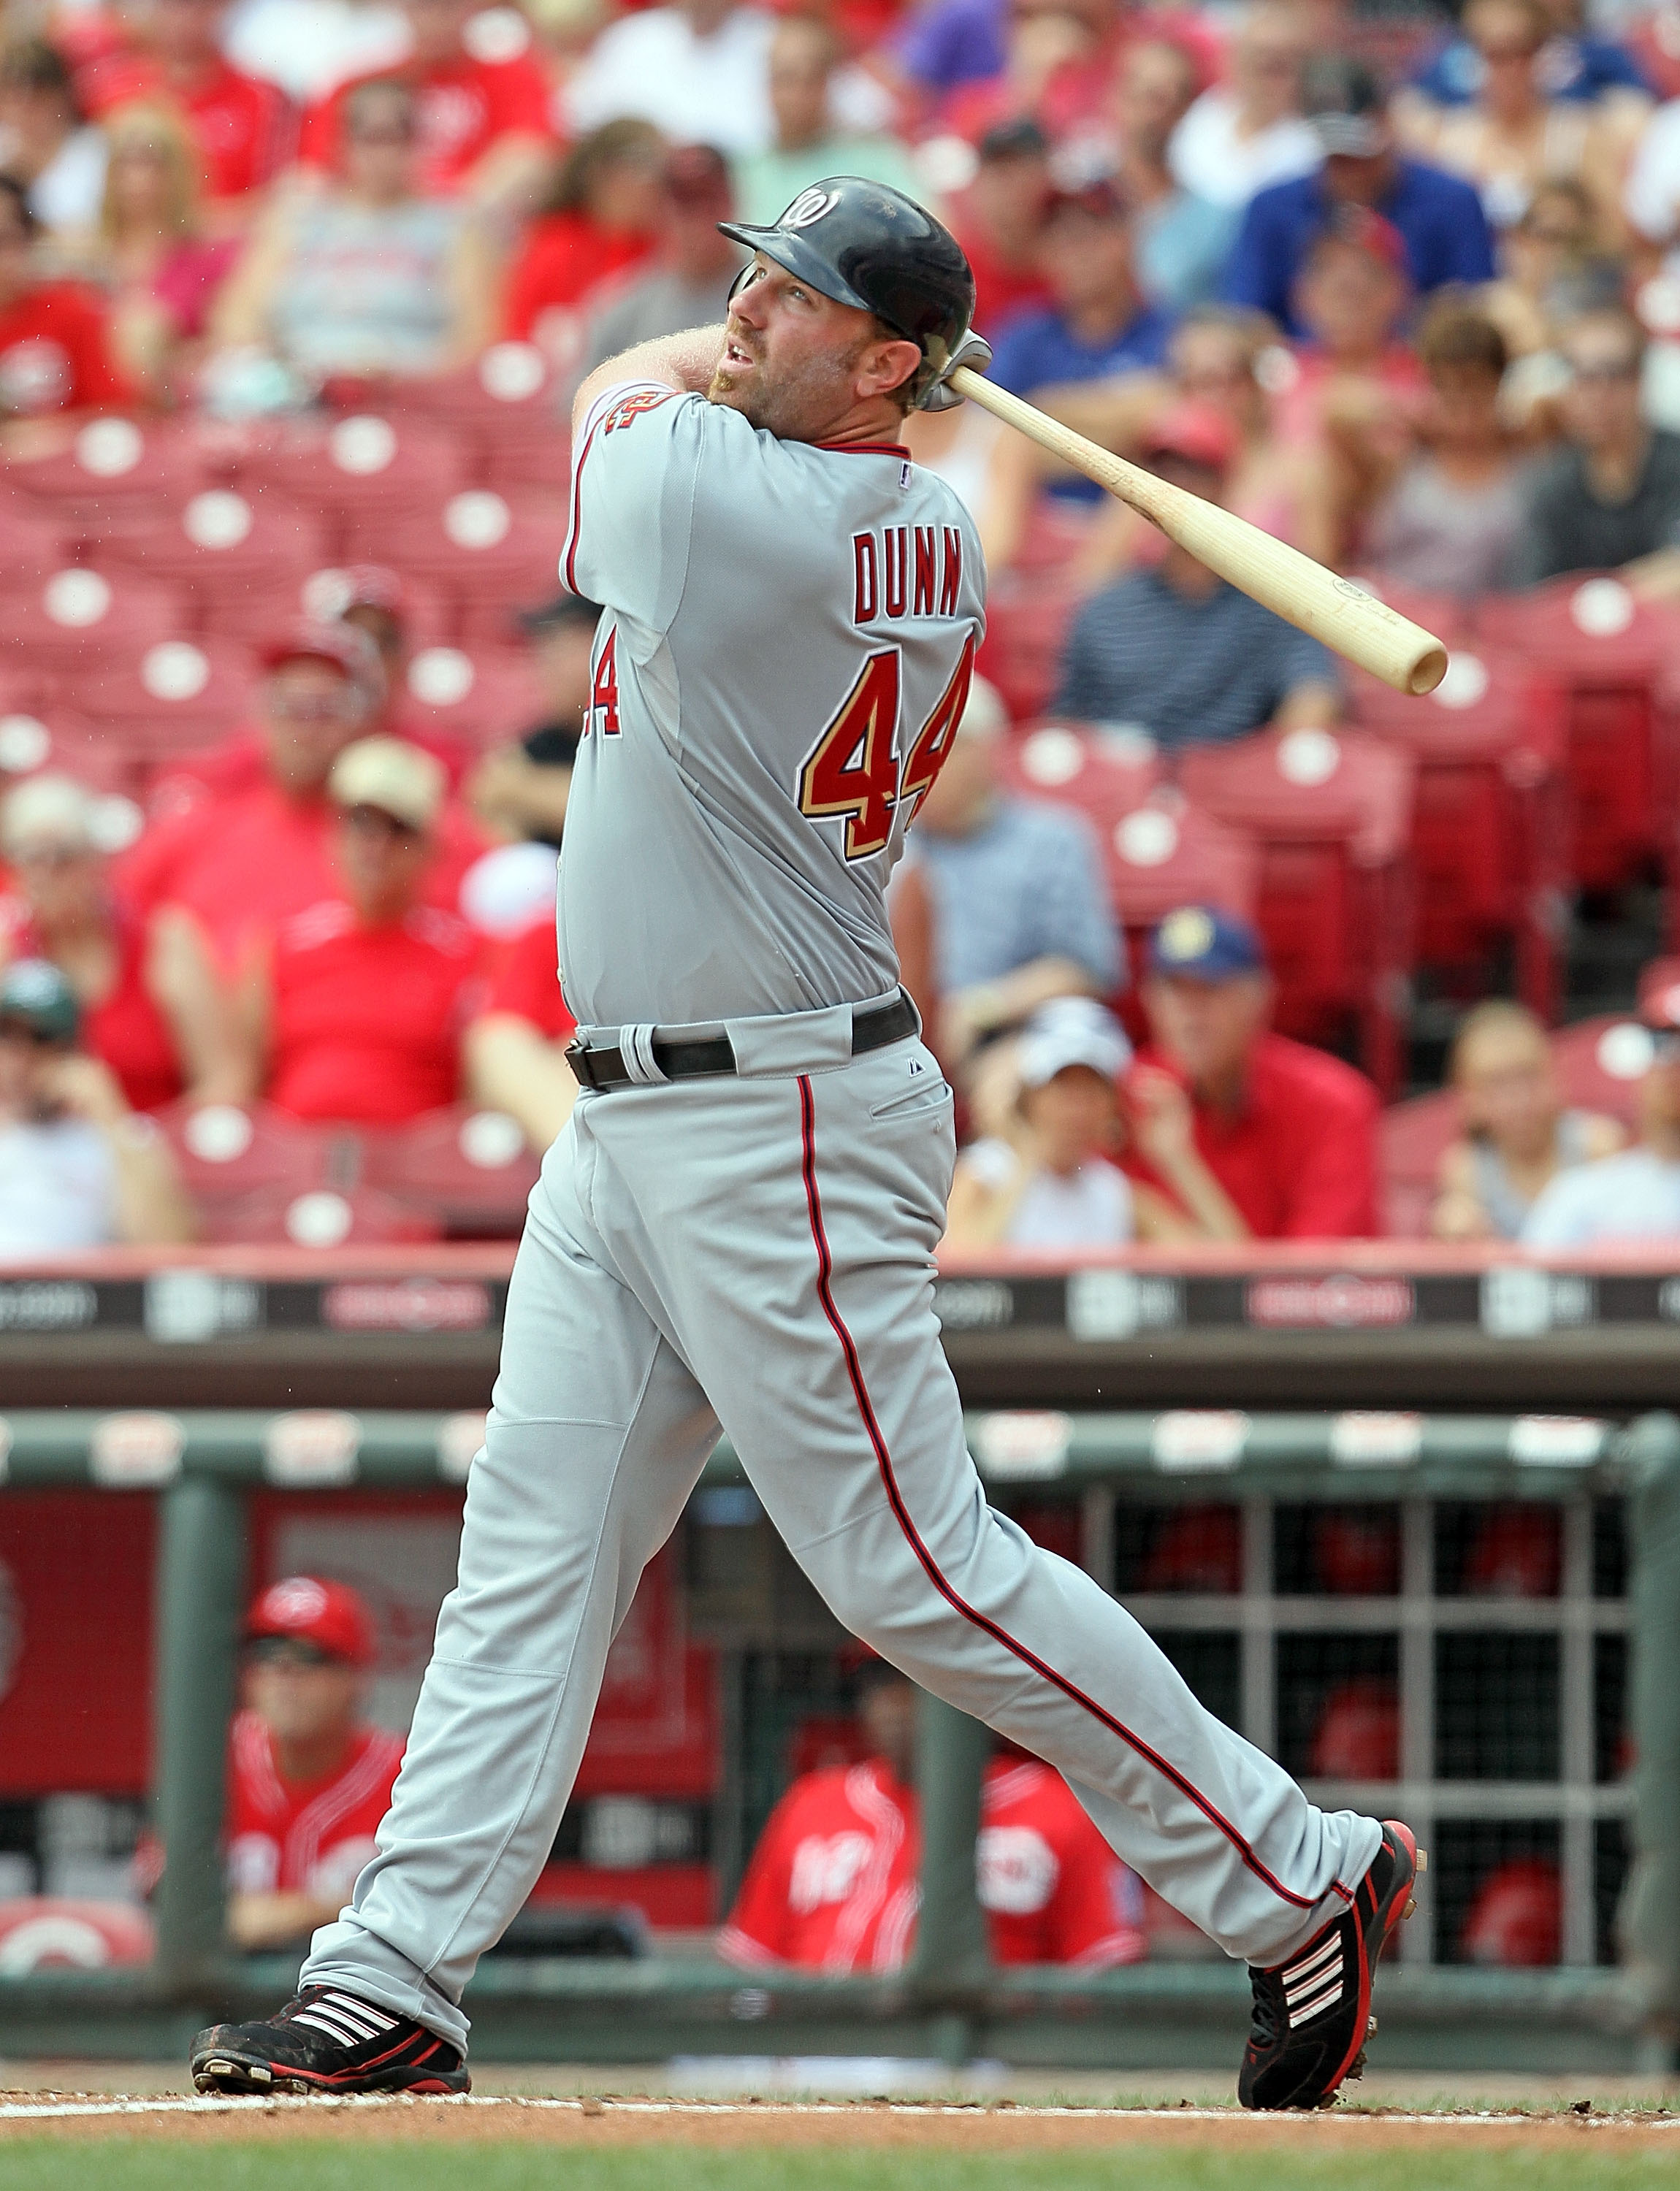 CINCINNATI - JULY 22:  Adam Dunn #44 of the Washington Nationals hits a home run during the game against the Cincinnati Reds at Great American Ball Park on July 22, 2010 in Cincinnati, Ohio.  (Photo by Andy Lyons/Getty Images)